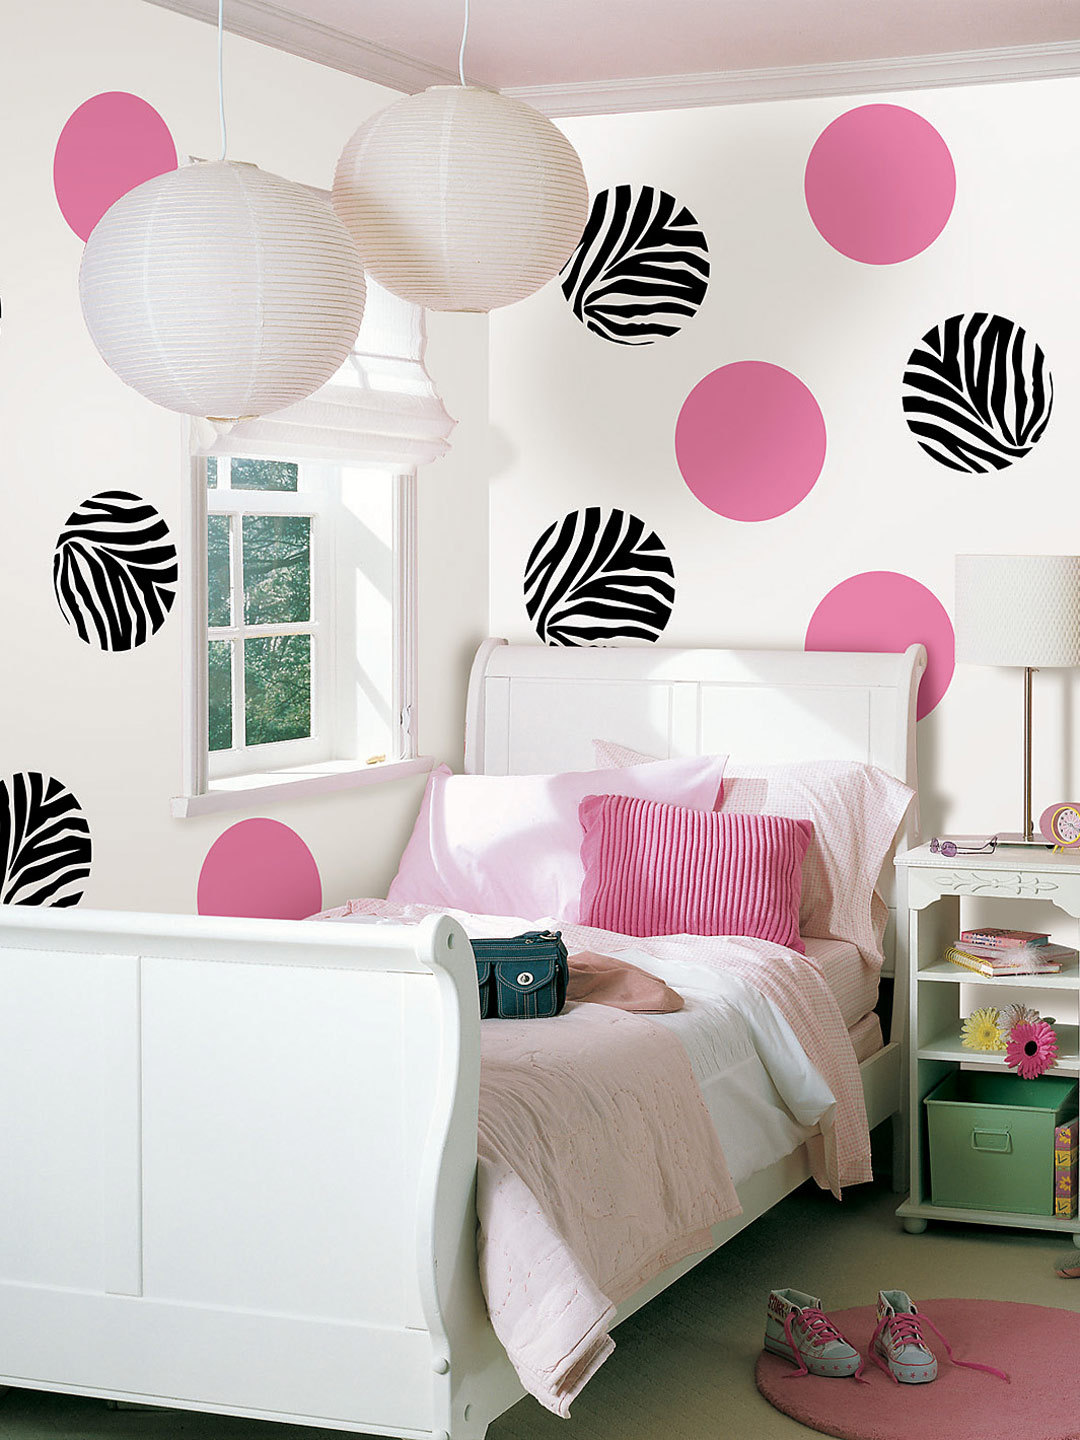 i love these zebra dot accents on the wall perfect zebra print decor - Zebra Print Decorating Ideas Bedroom